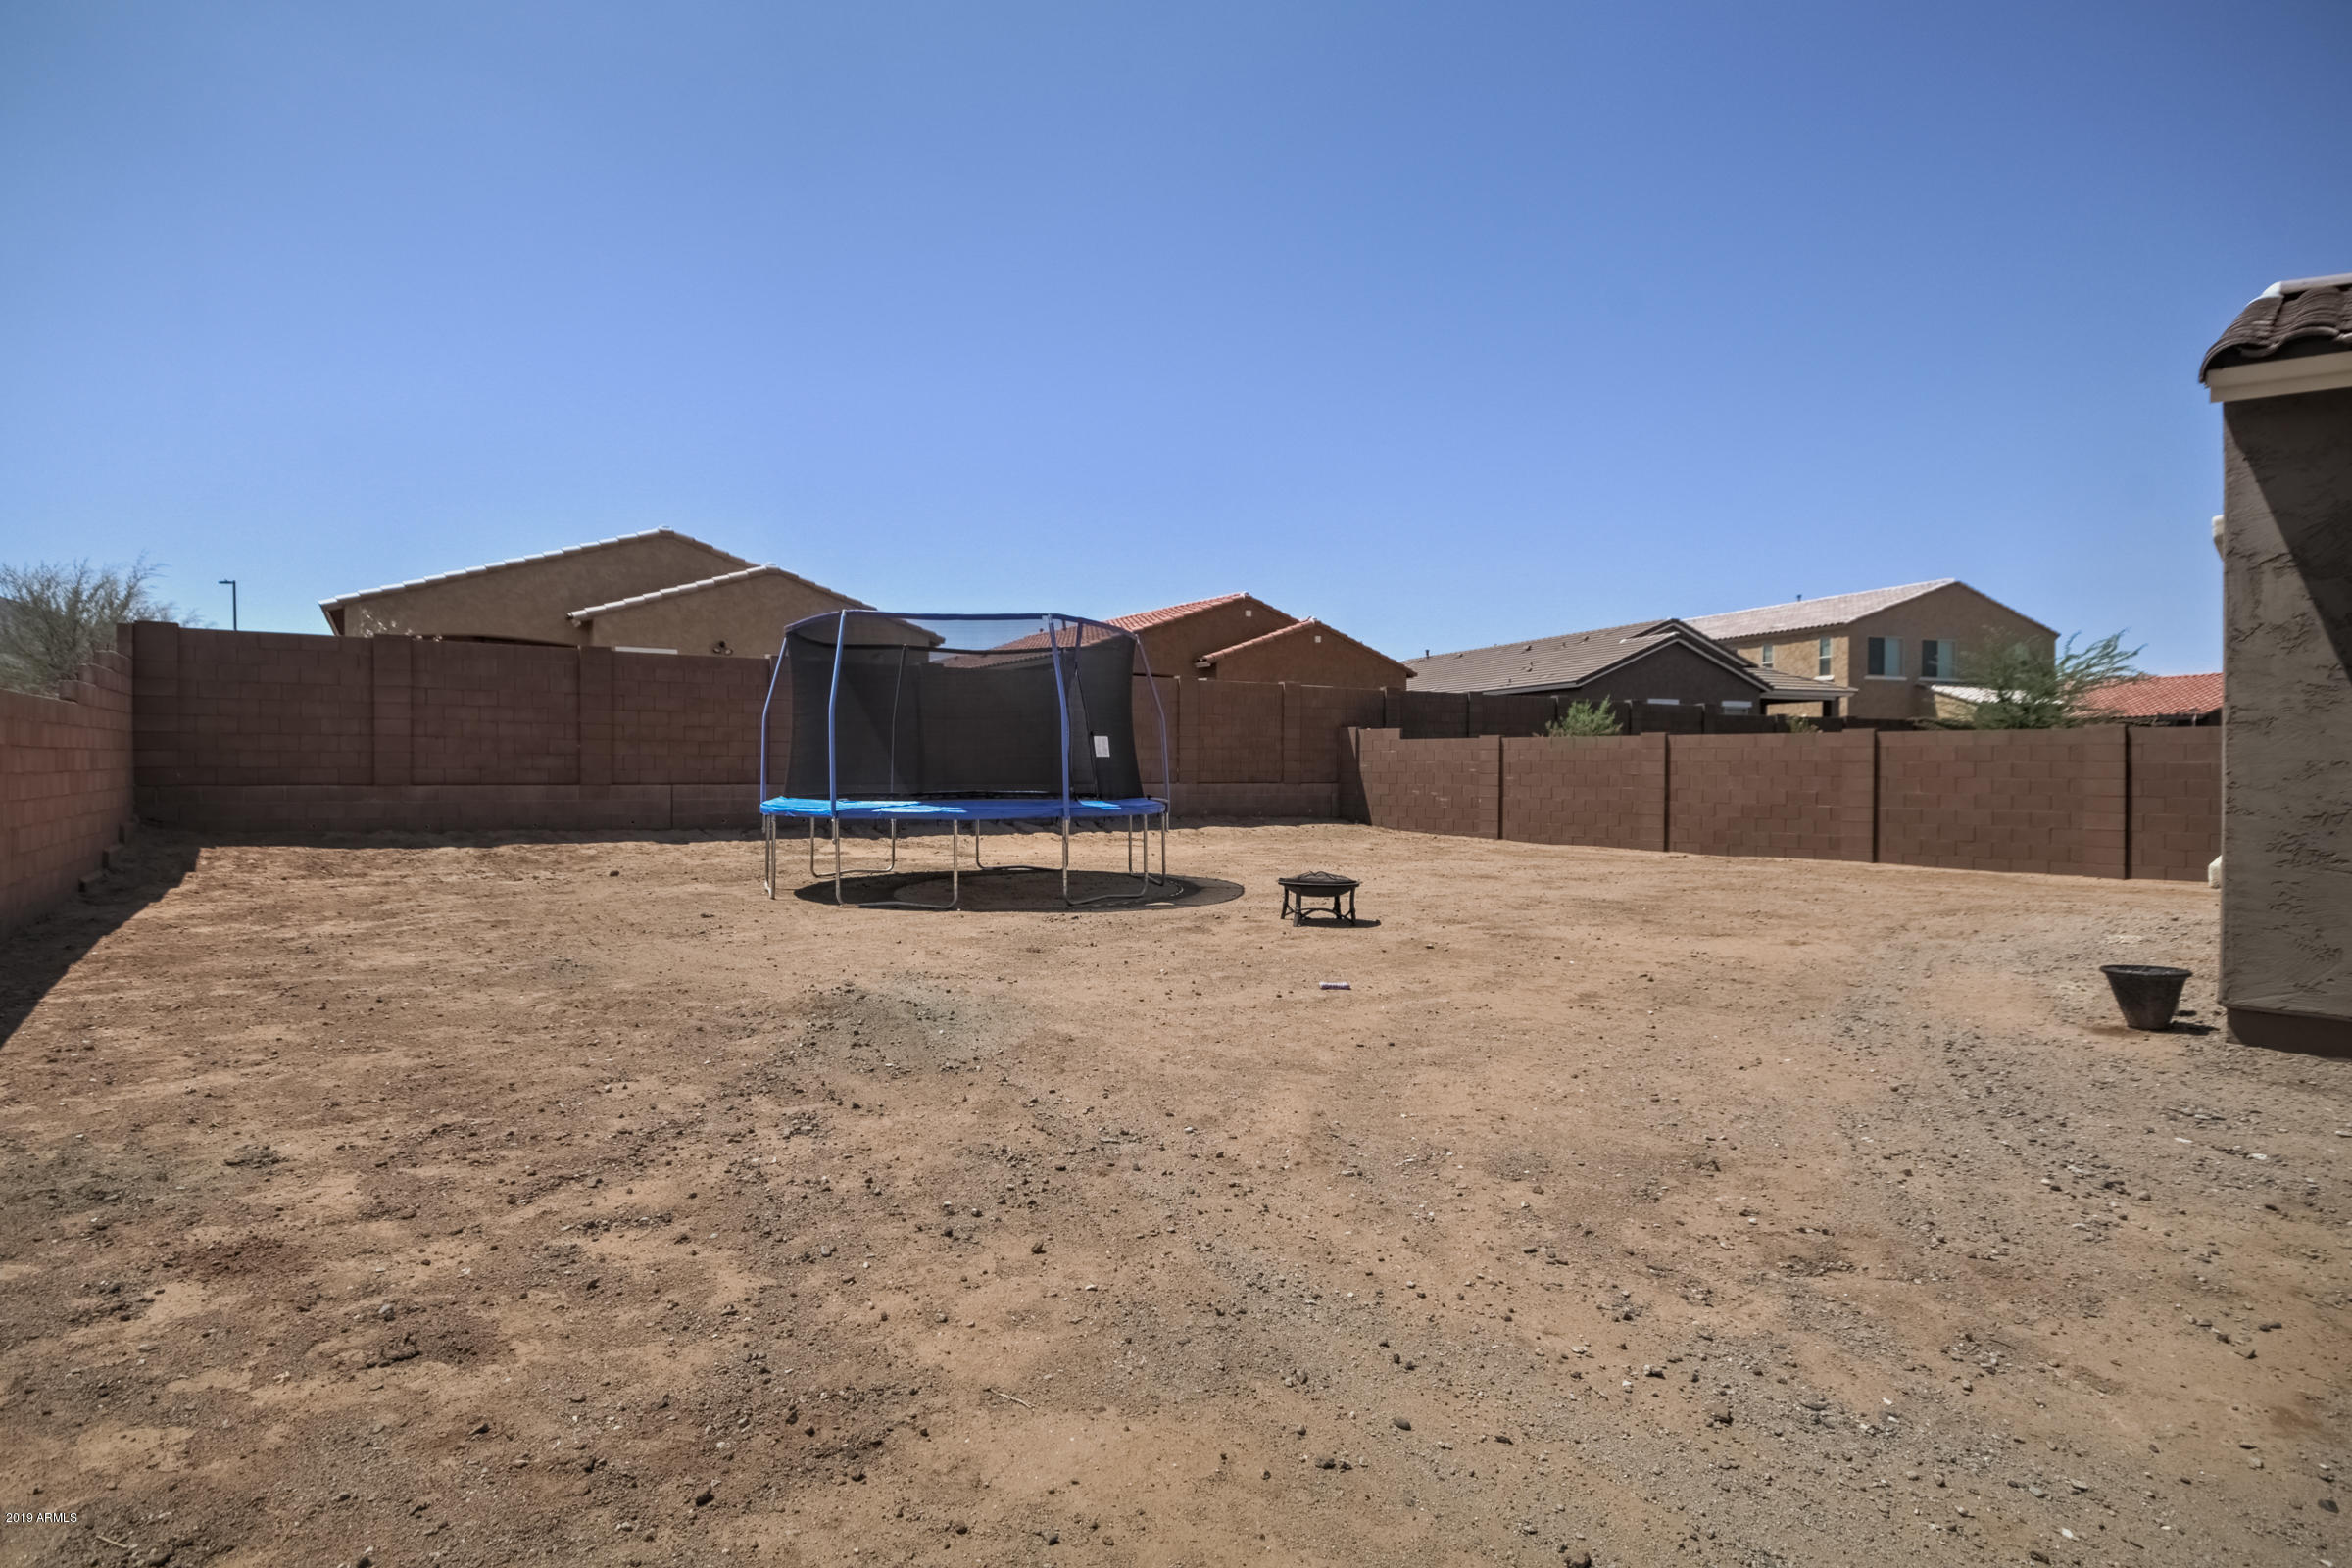 MLS 5967799 2433 E GILLCREST Road, Gilbert, AZ 85298 Gilbert AZ Adora Trails